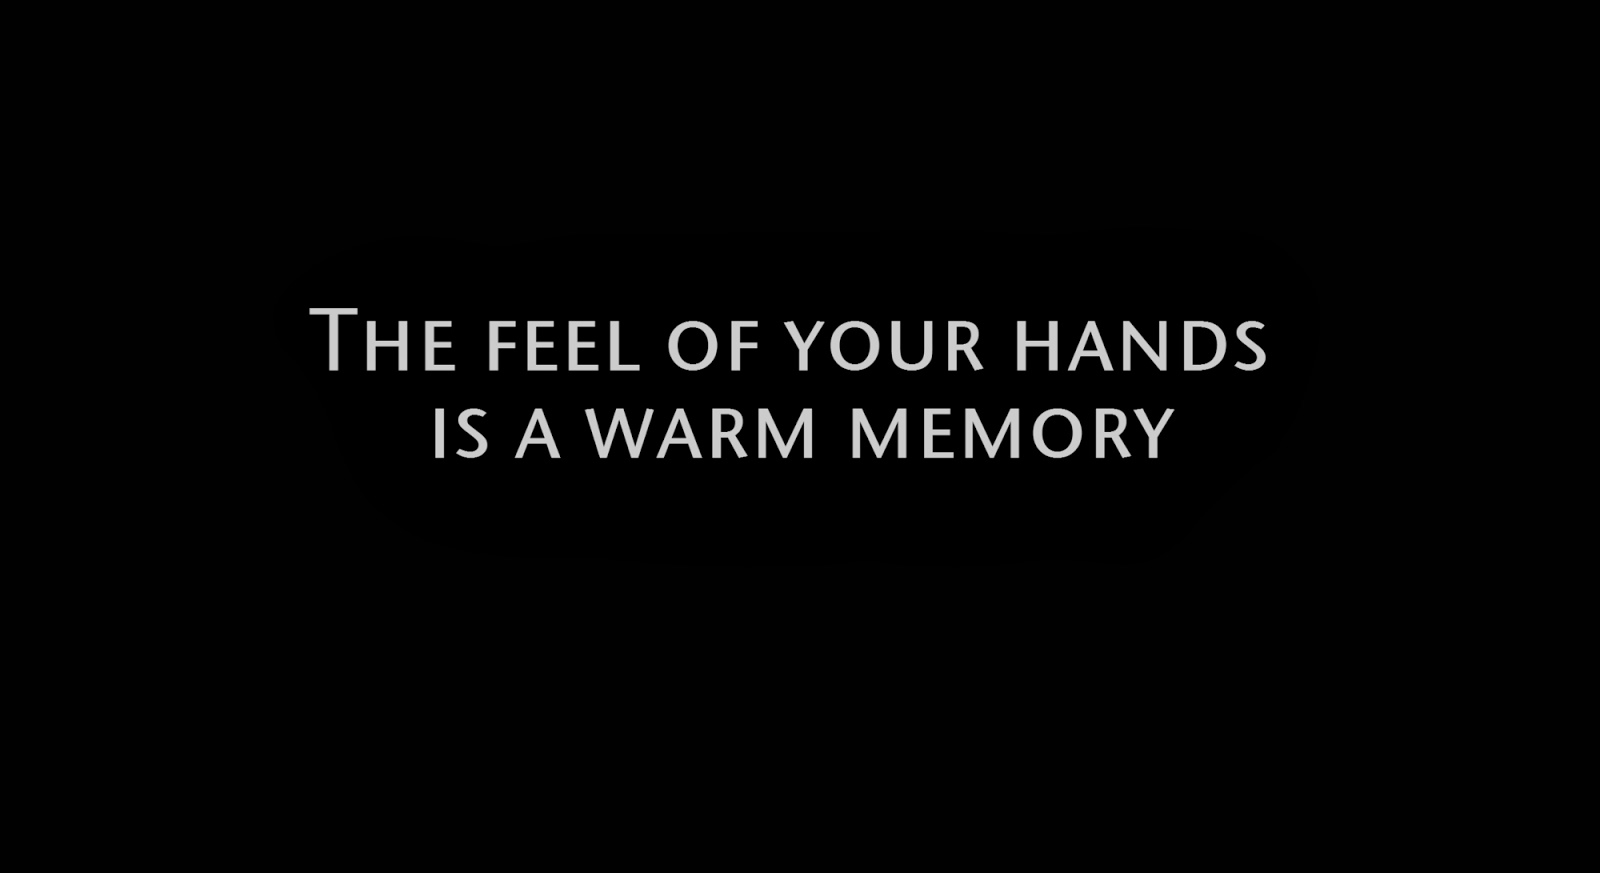 The feel of your hands is a warm memory